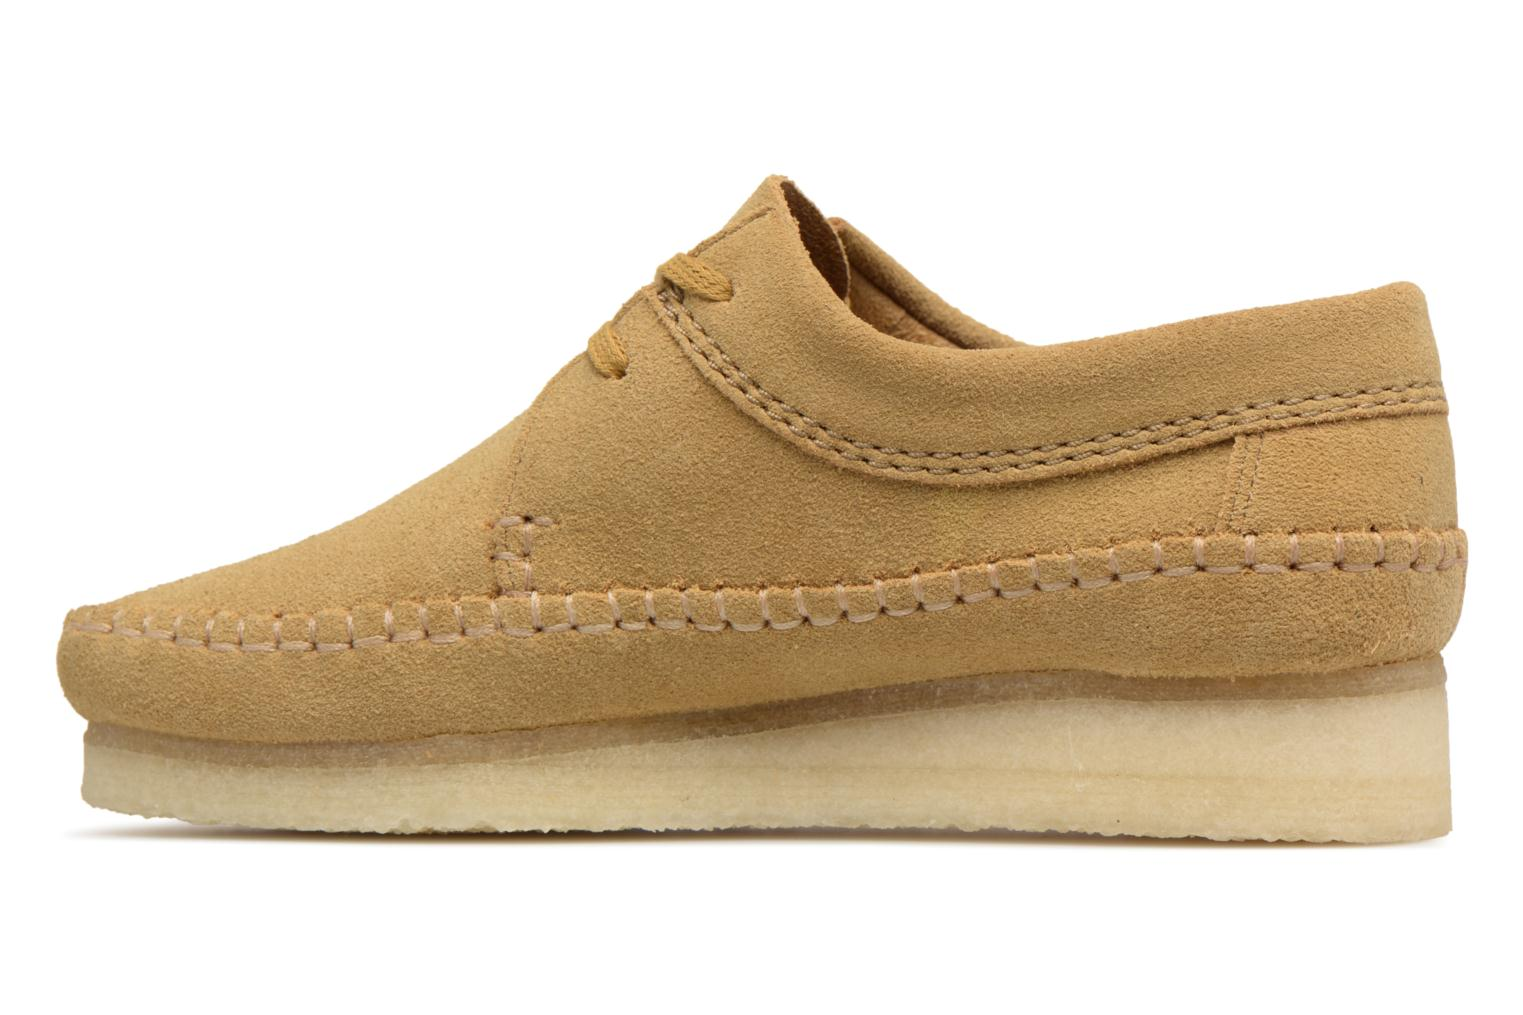 Chaussures à lacets Clarks Originals Weaver W Marron vue face